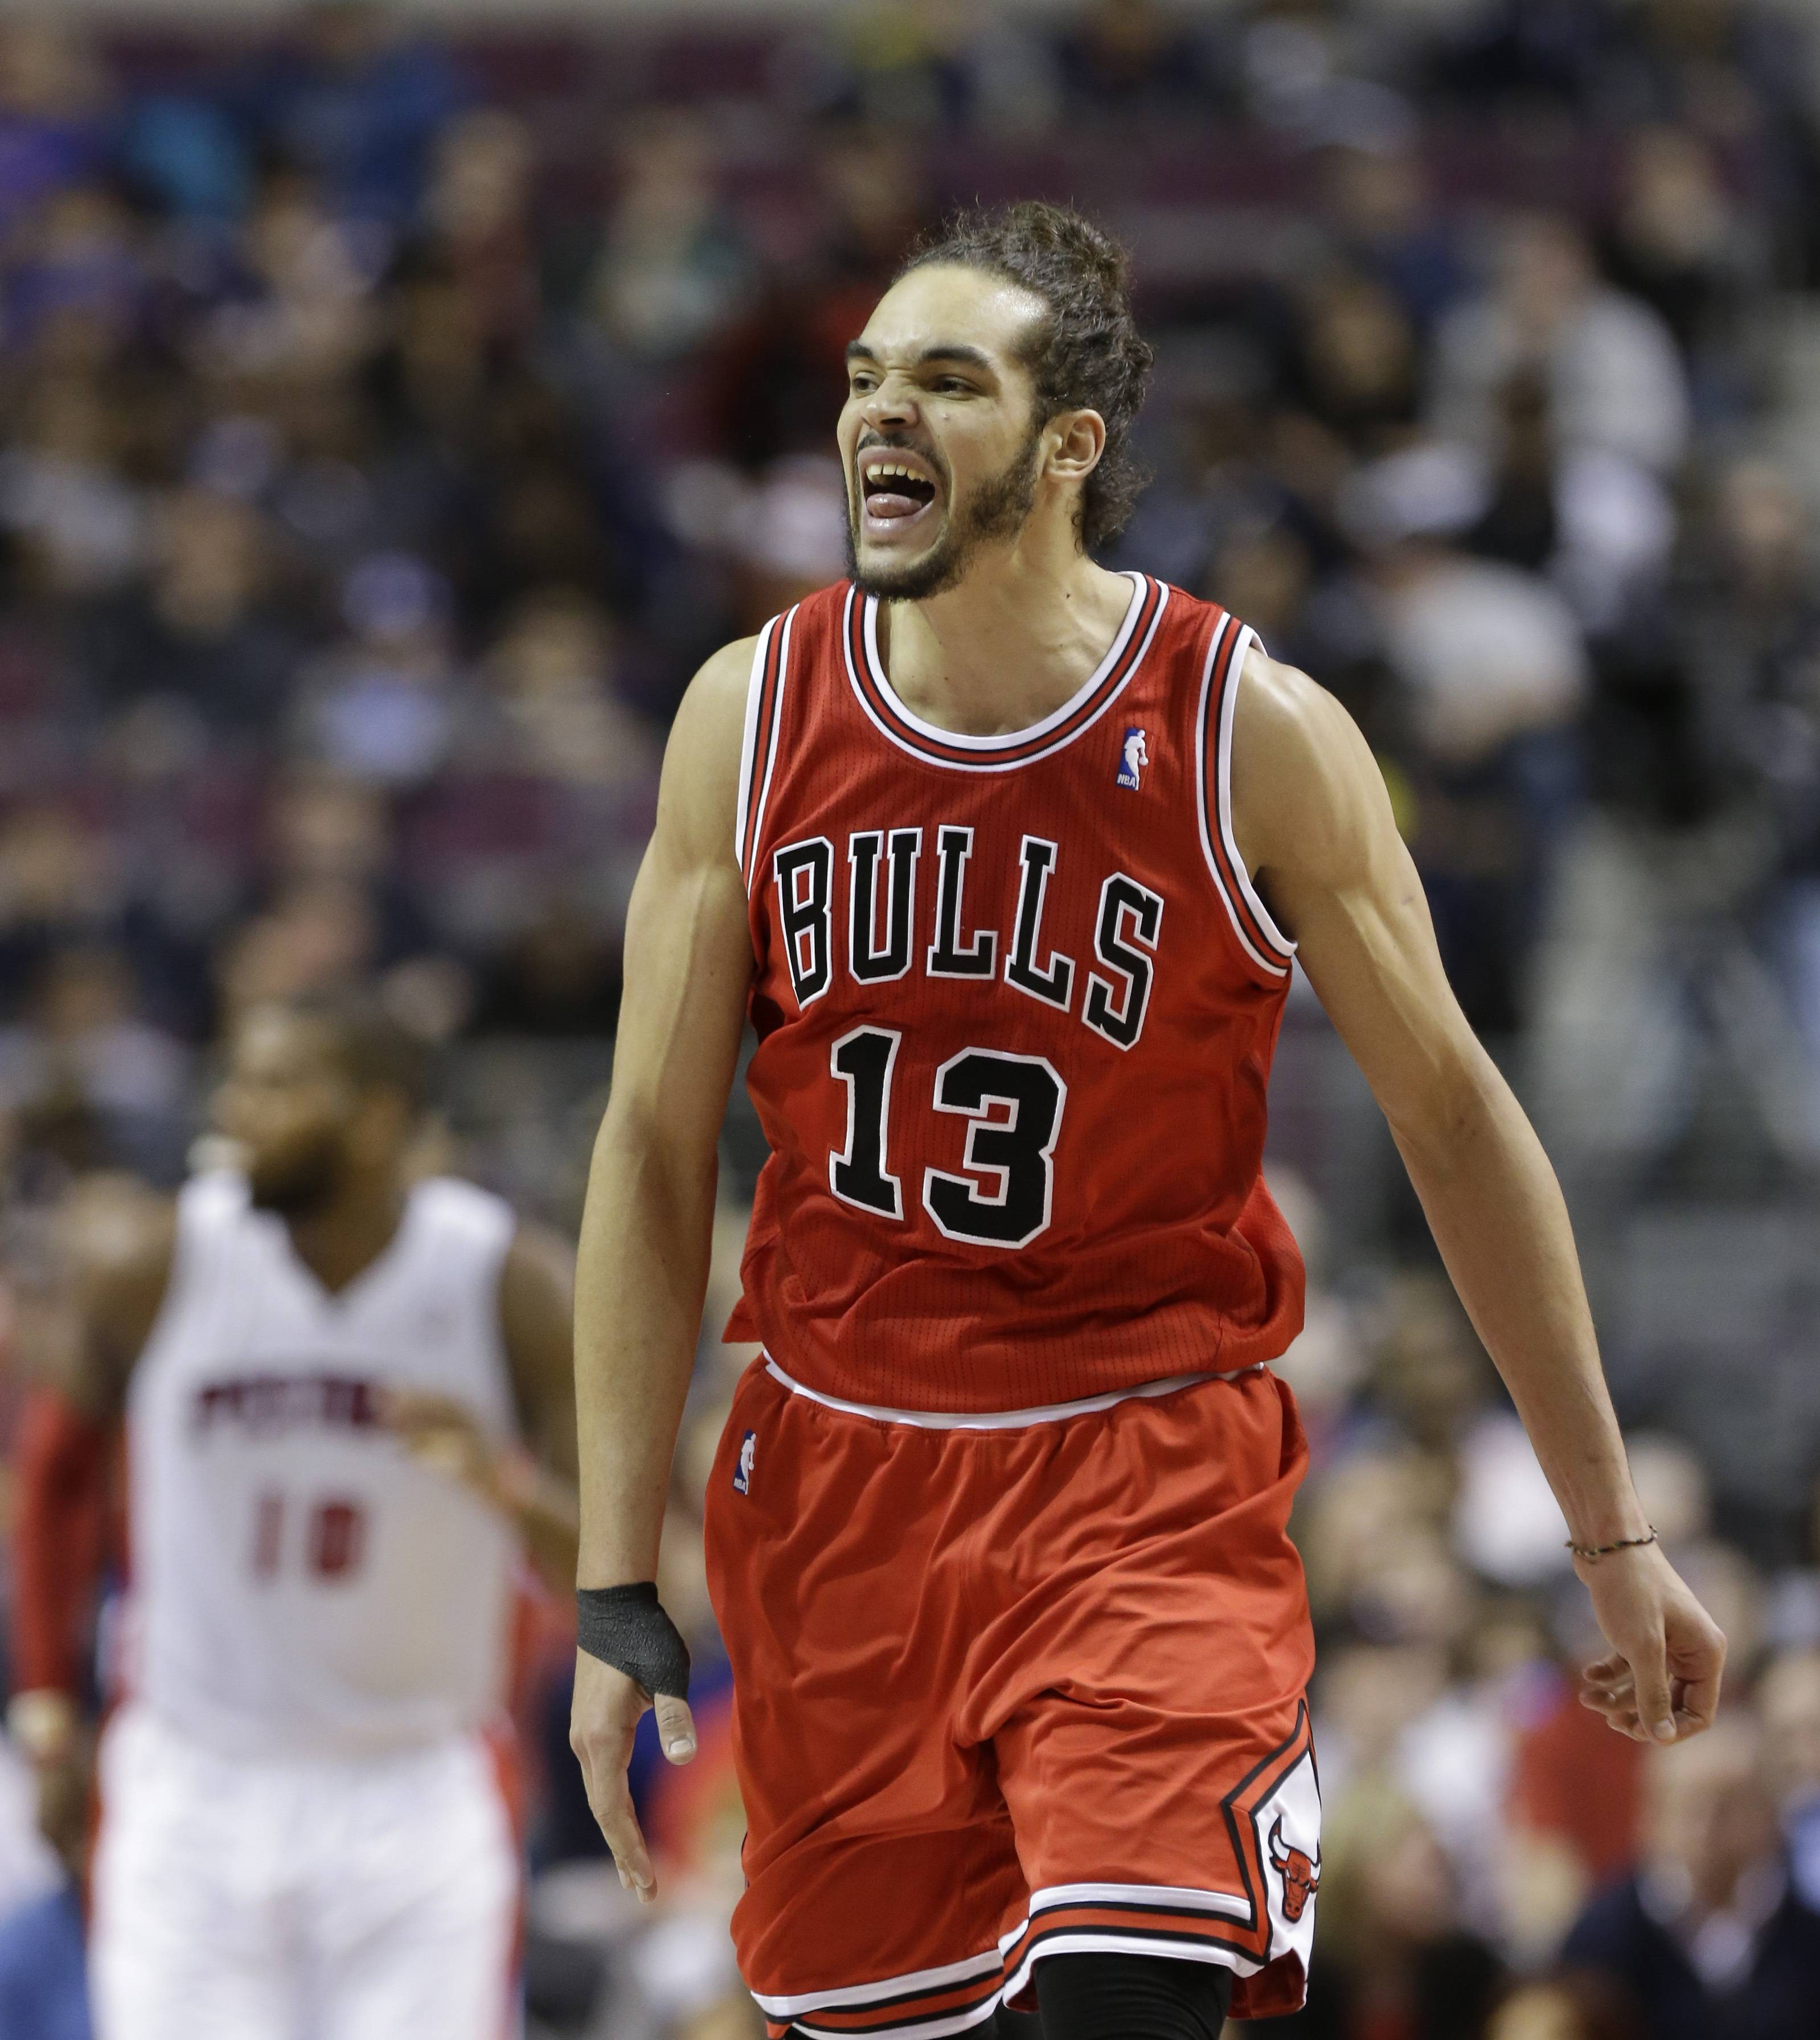 Bulls center Joakim Noah reacts after a play during the second half Wednesday night, when he had another triple-double in the victory over the Pistons 105-94.